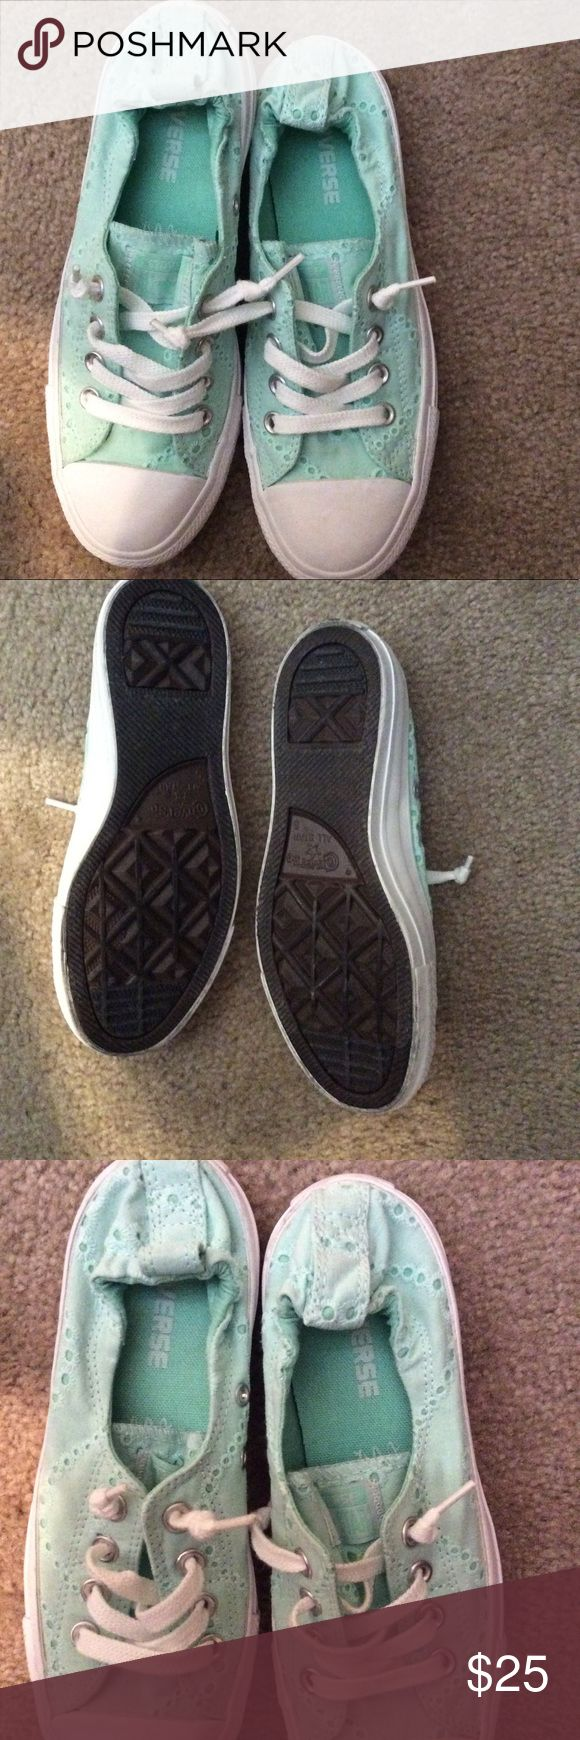 Converse slip ons size 7 women's Beautiful light aqua color eyelet lace Converse. They slip on & don't require tying/untying. Size 7 women's shoe. Converse Shoes Sneakers